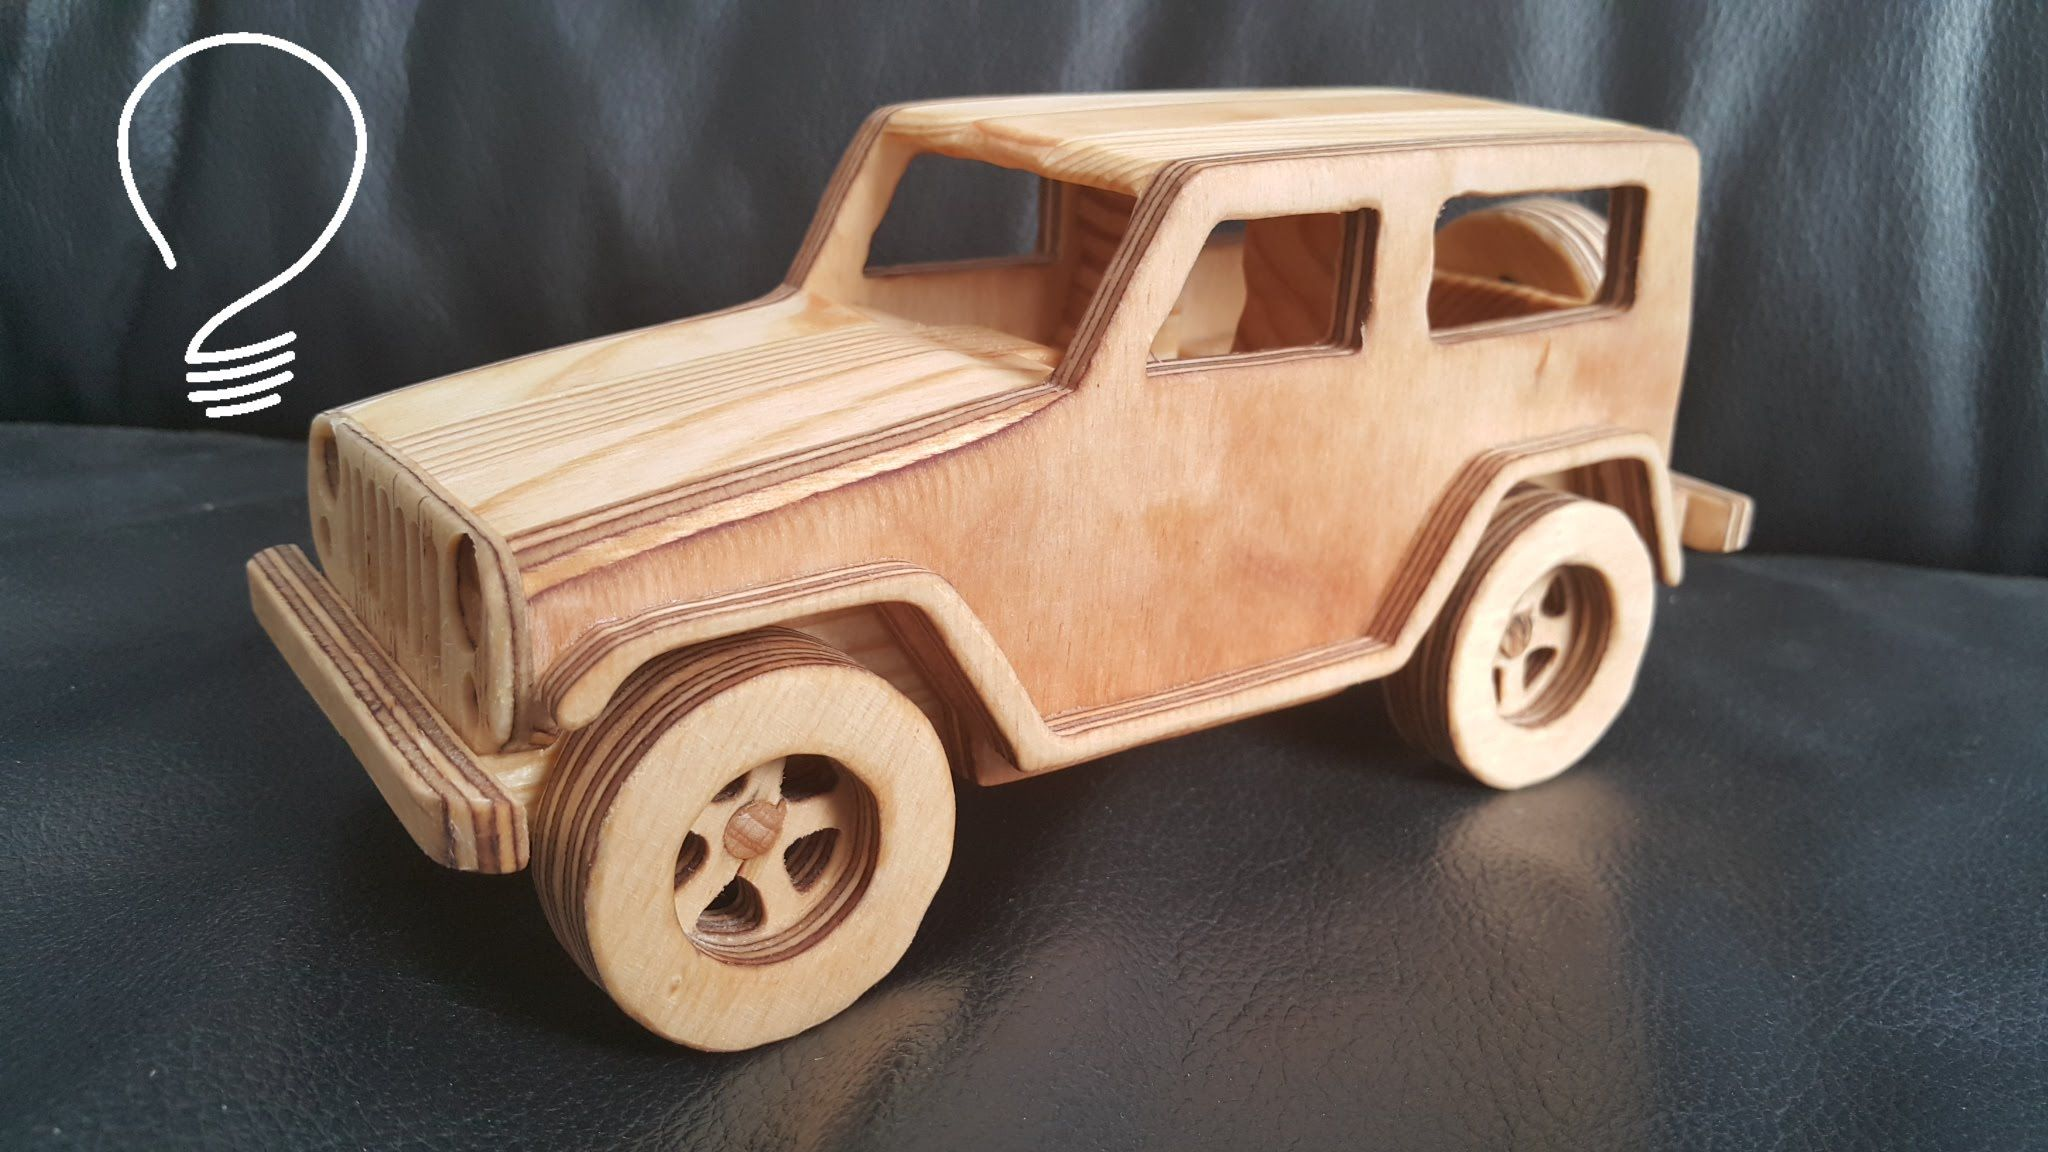 Making Jeep Wrangler Toy Car Hobbies At Home Toys Making